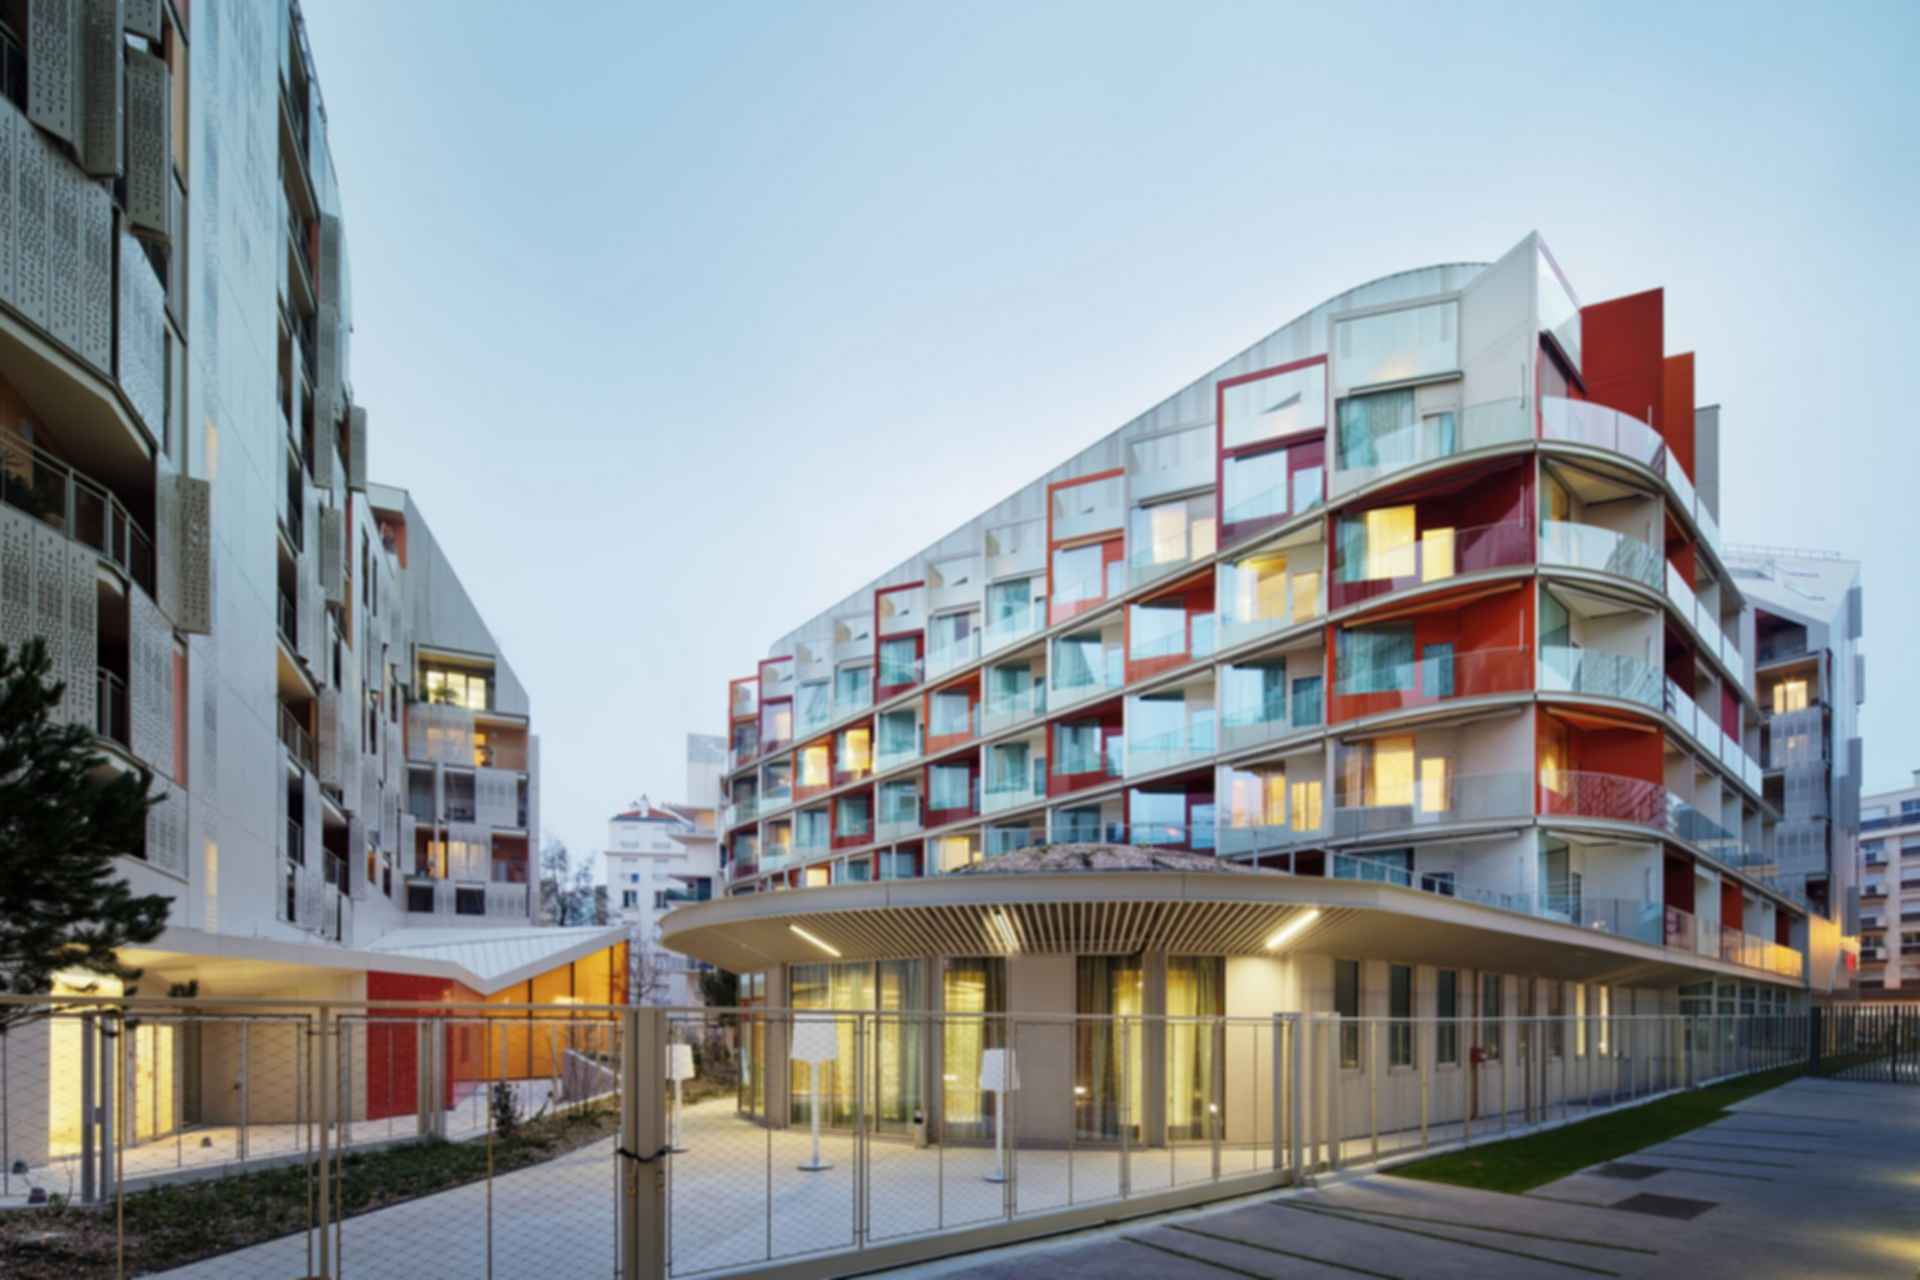 Nursing Home in Batignolles - exterior/street view